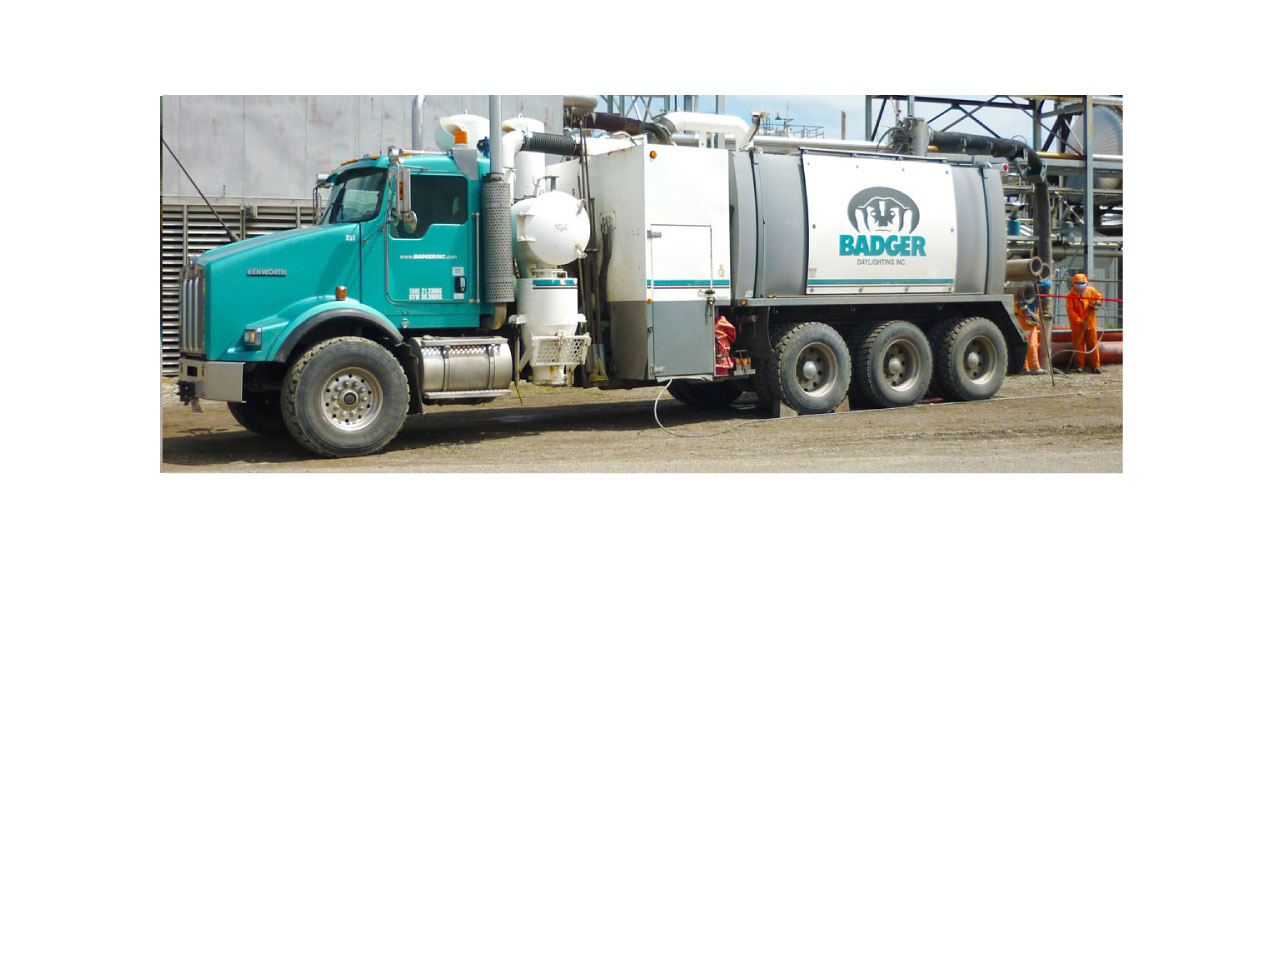 Badger-Daylighting-hydrovac-vacuum-truck-services-usa-canada